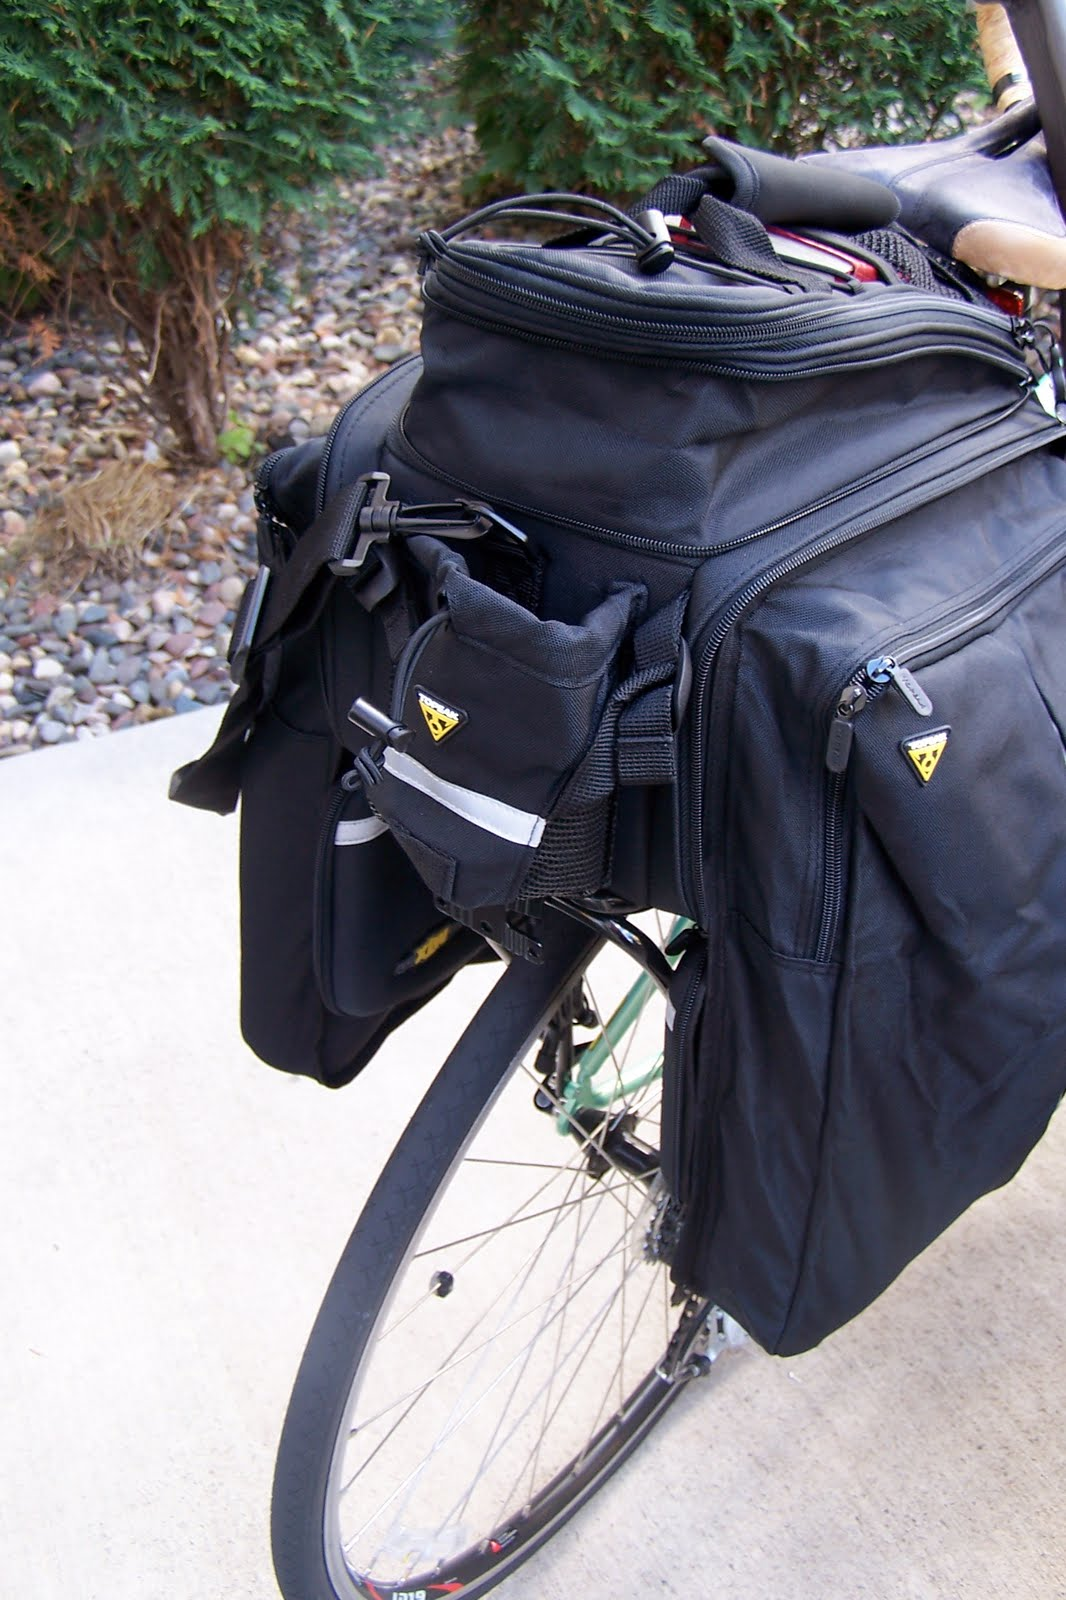 Steady State Condition Review Topeak Mtx Trunk Bag And